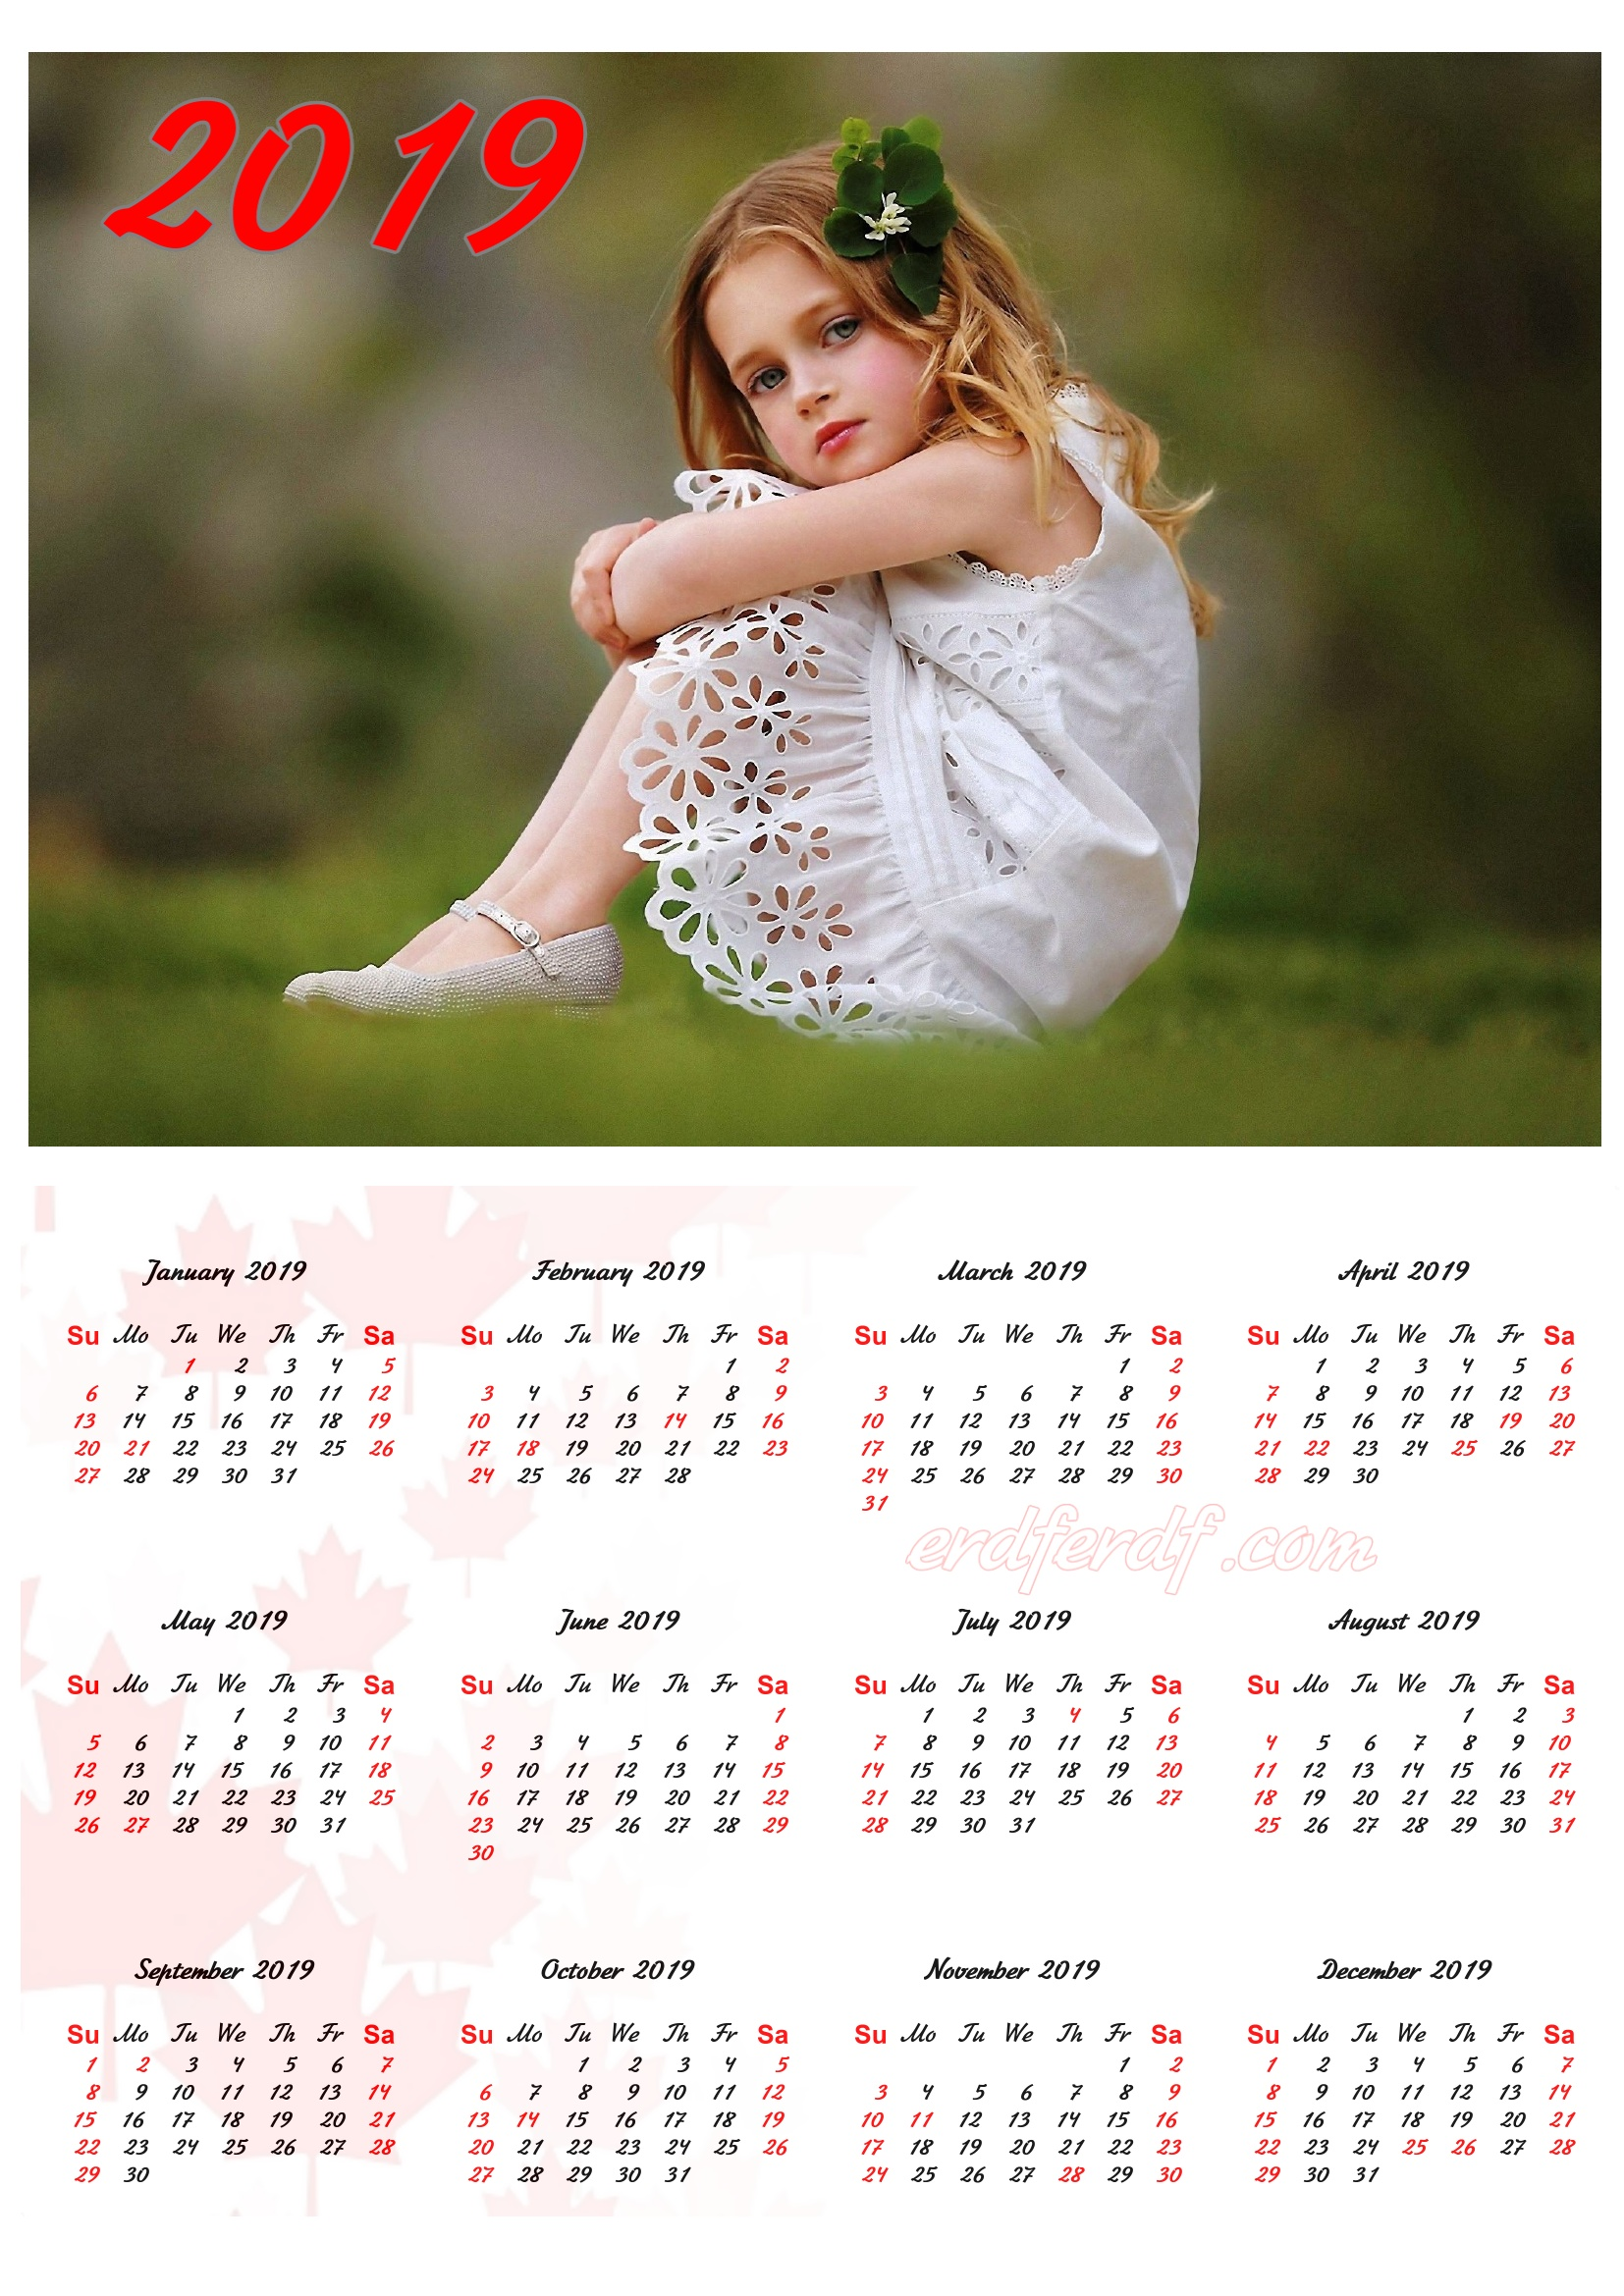 My Girl Cute Canada 2019 Calendar Printable Free Download